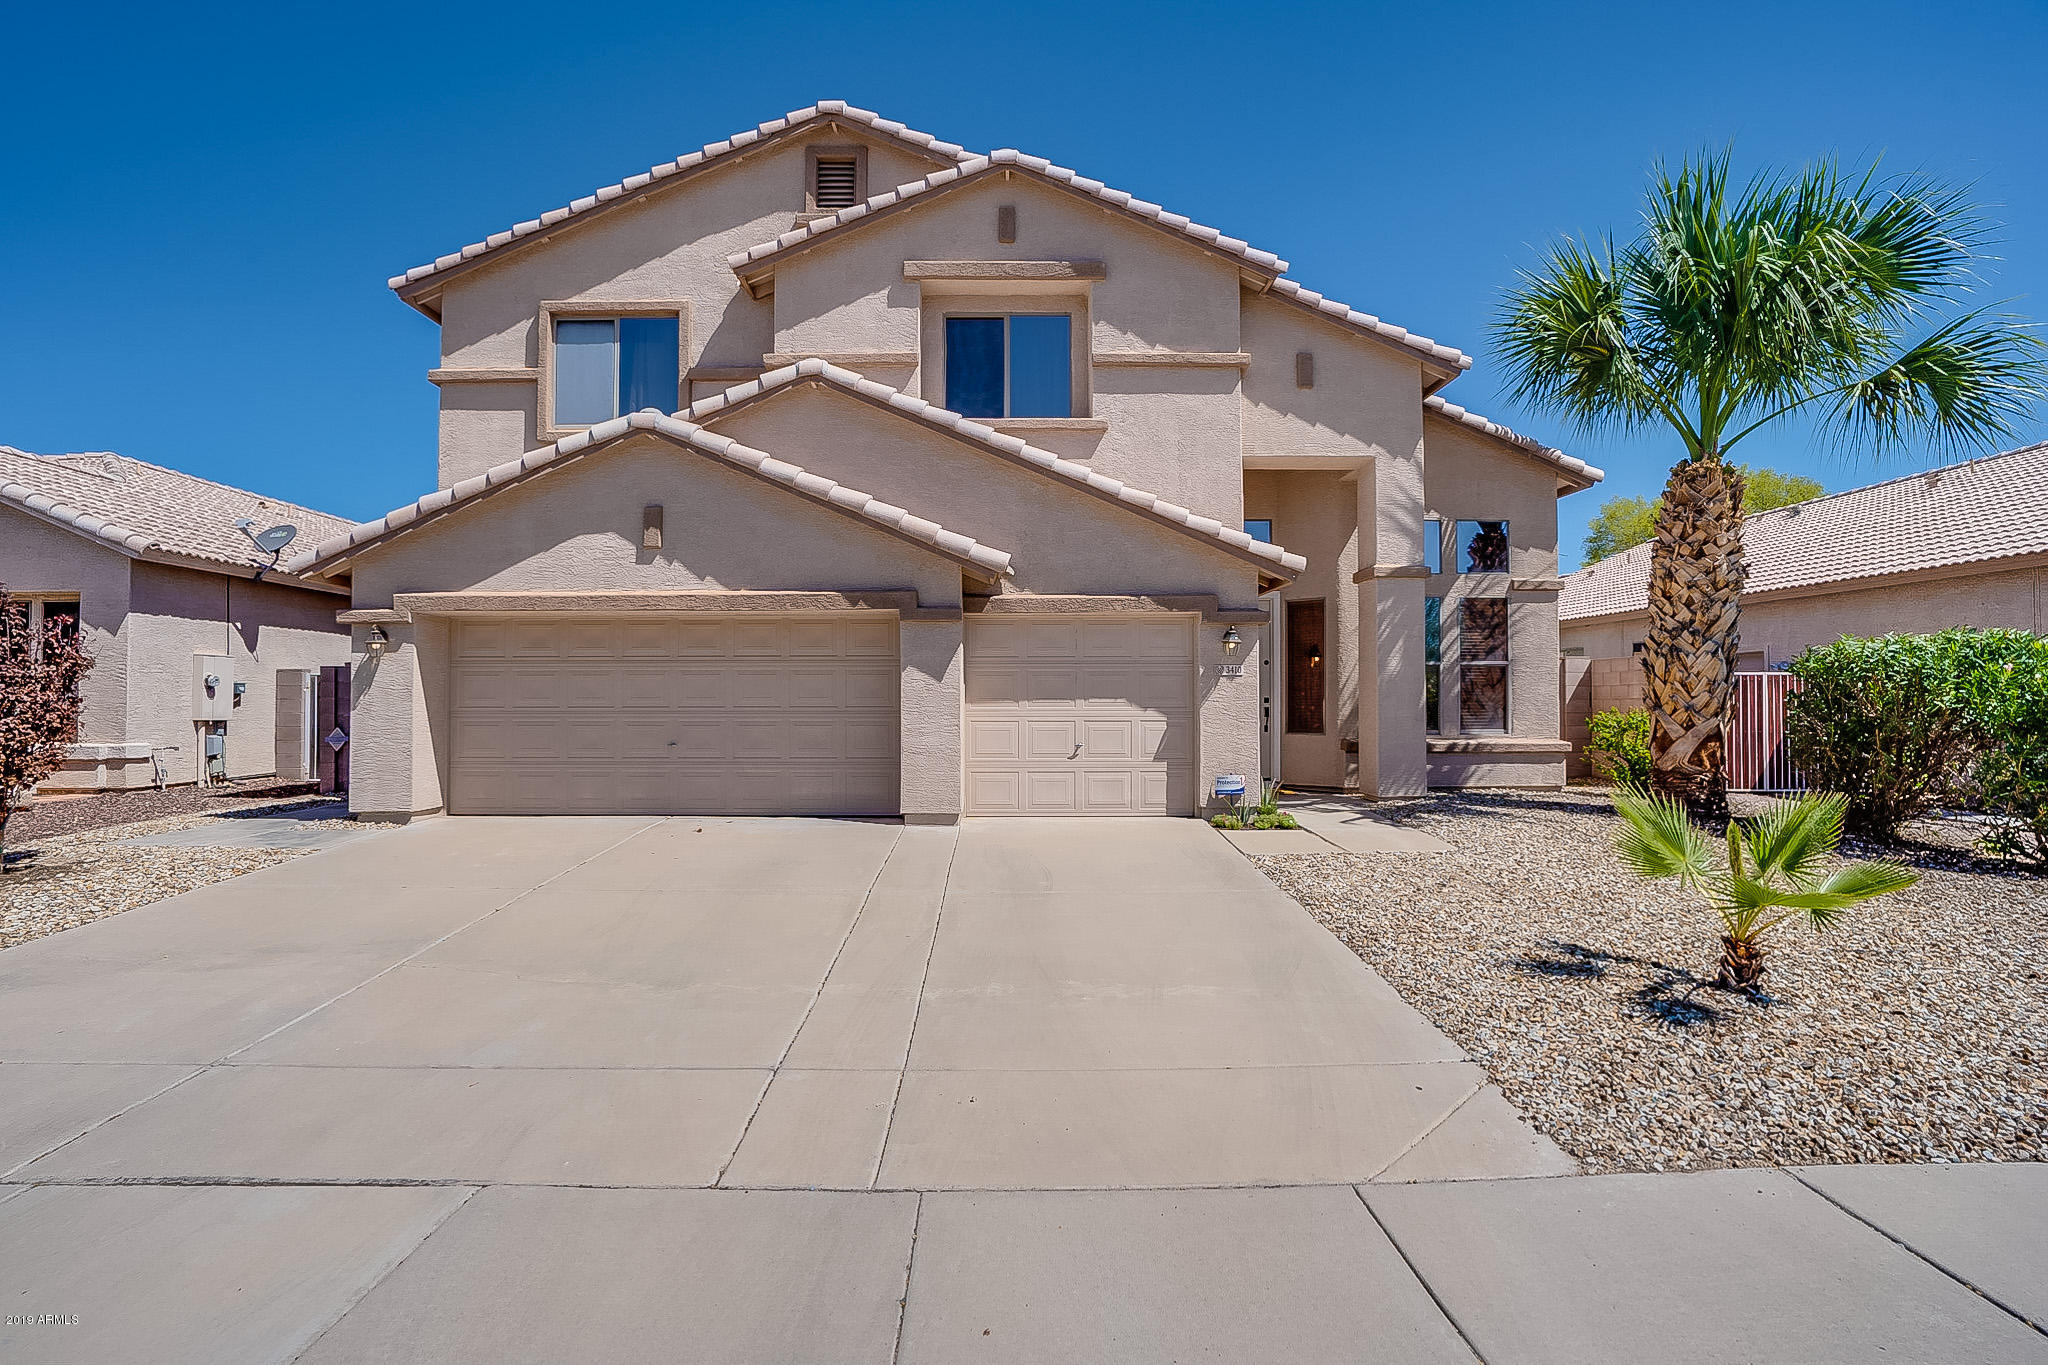 Photo for 3410 W Los Gatos Drive, Phoenix, AZ 85027 (MLS # 5964832)